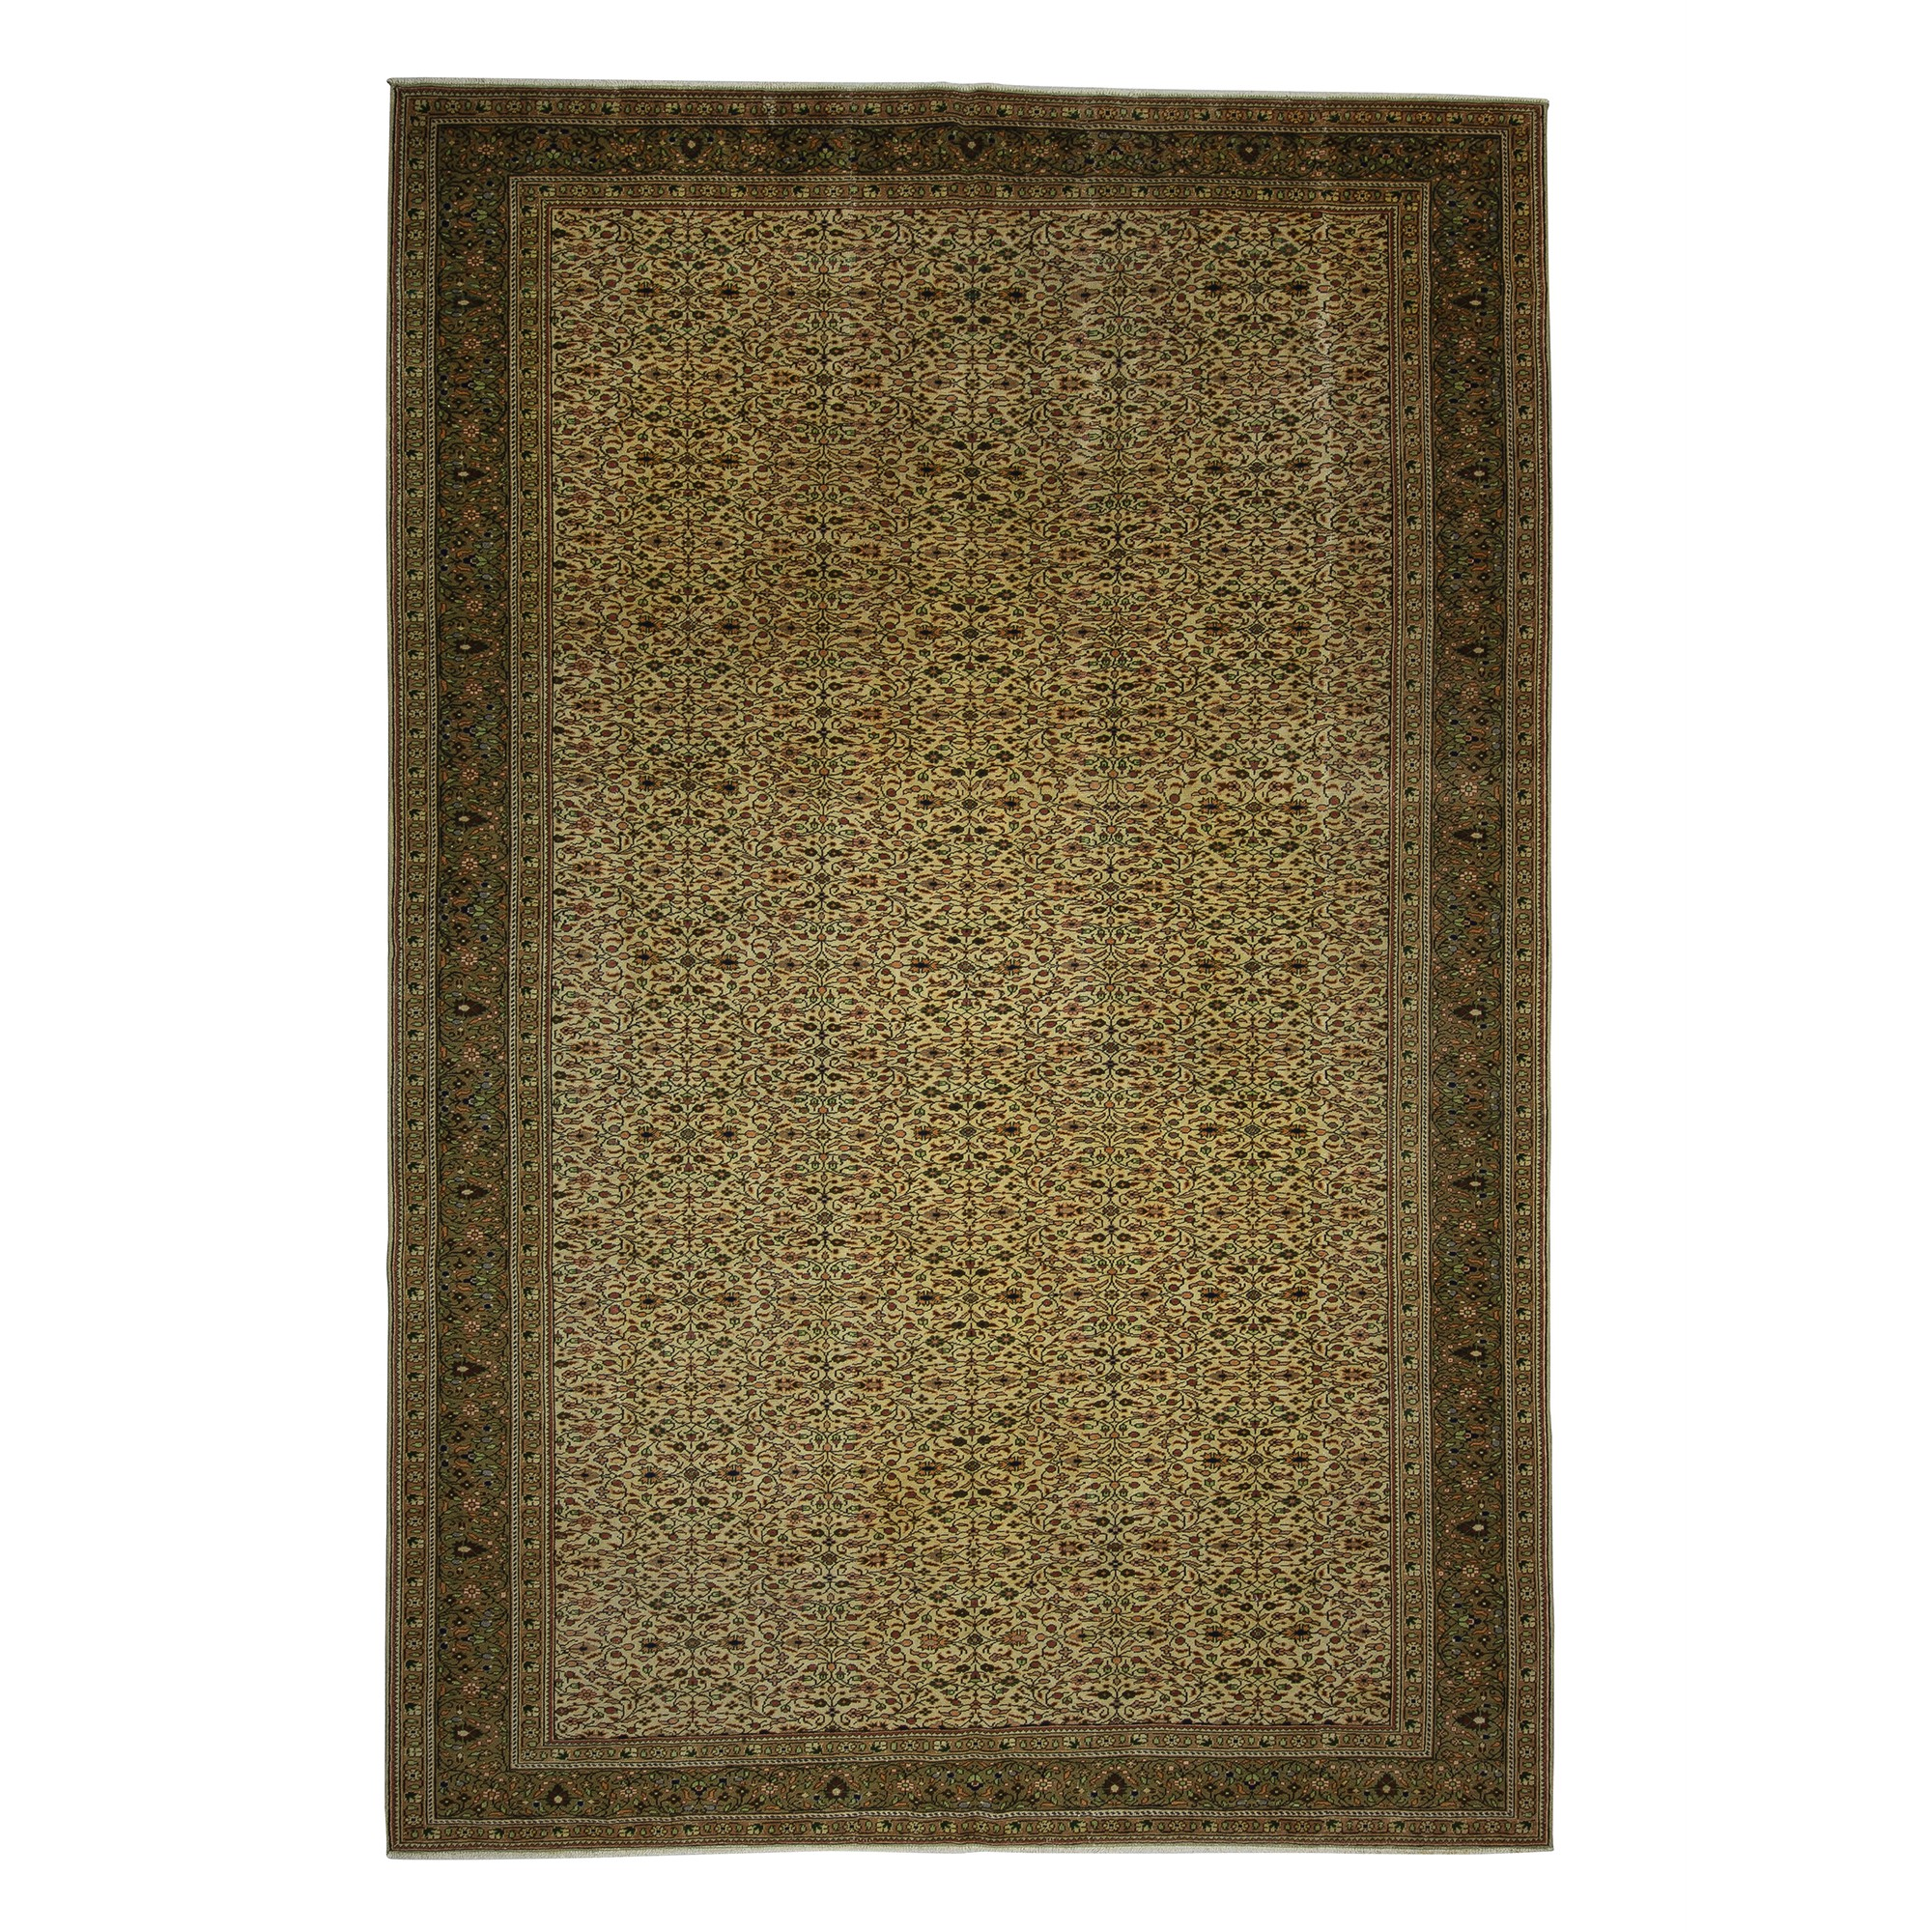 Oversized Double Knotted Turkish Carpet Rug 8x12 Feet 236,355 - Turkish Carpet Rug